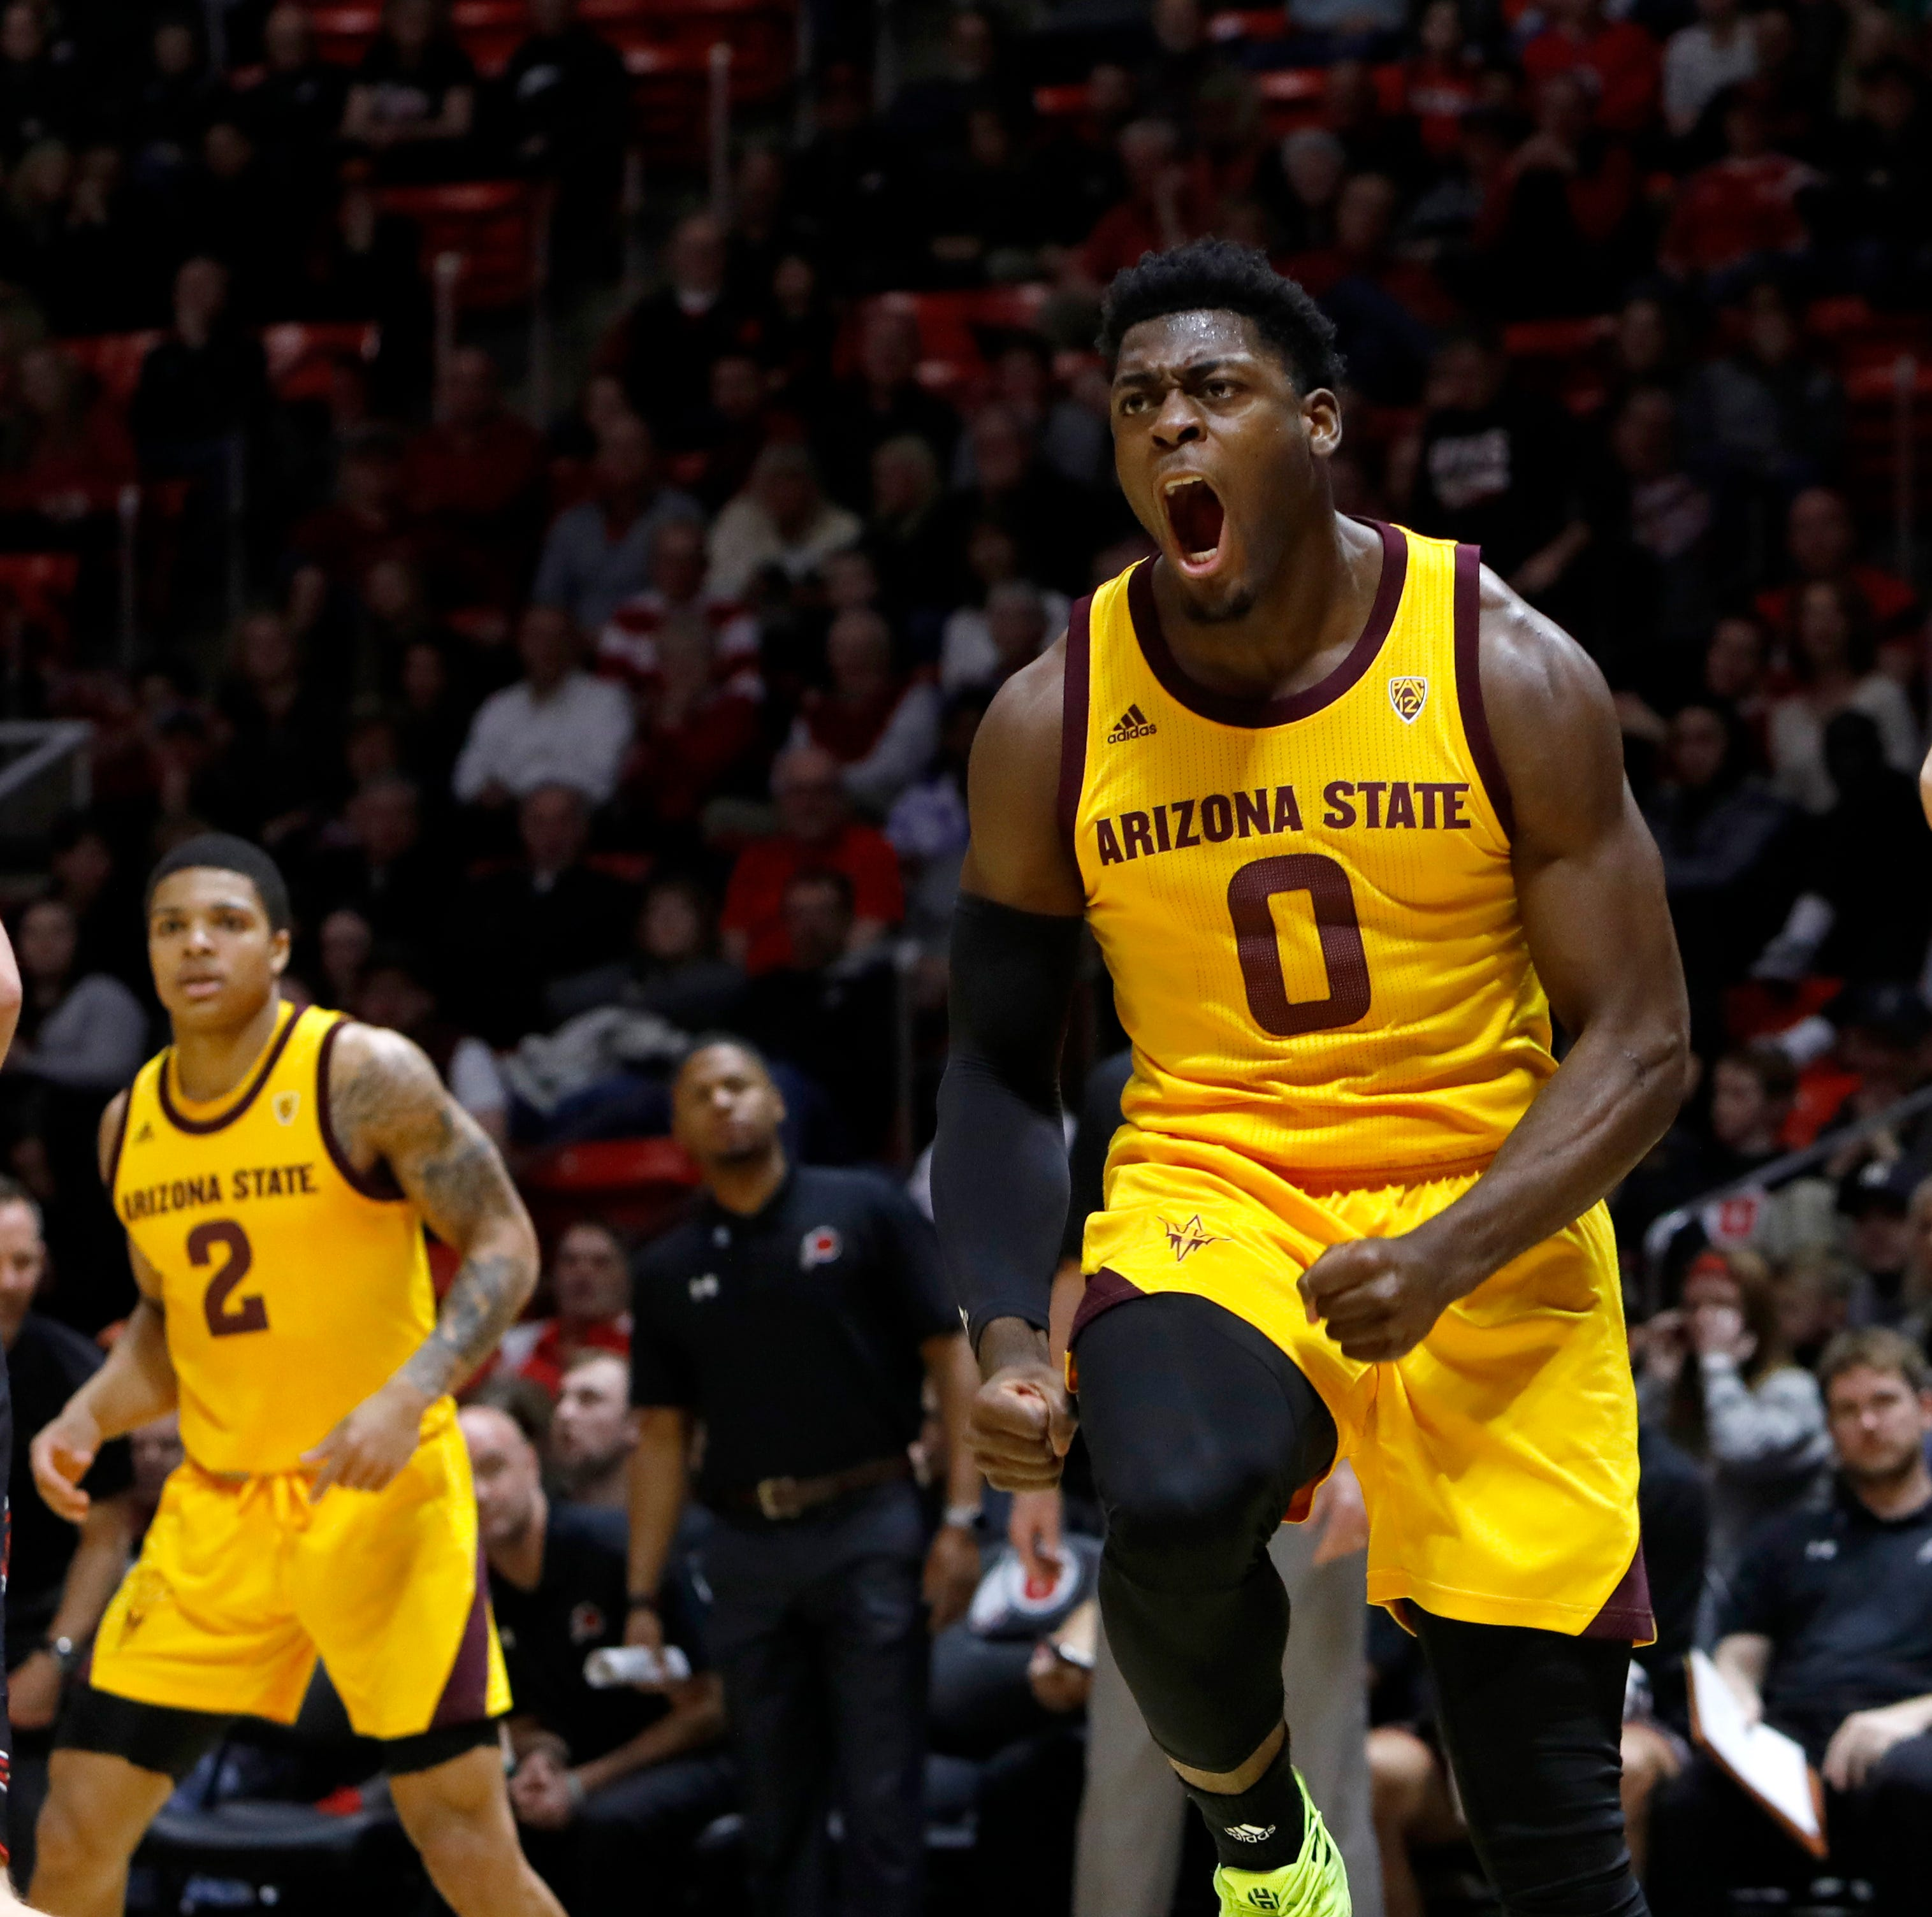 Edwards, Cheatham lead ASU basketball to road win over Utah